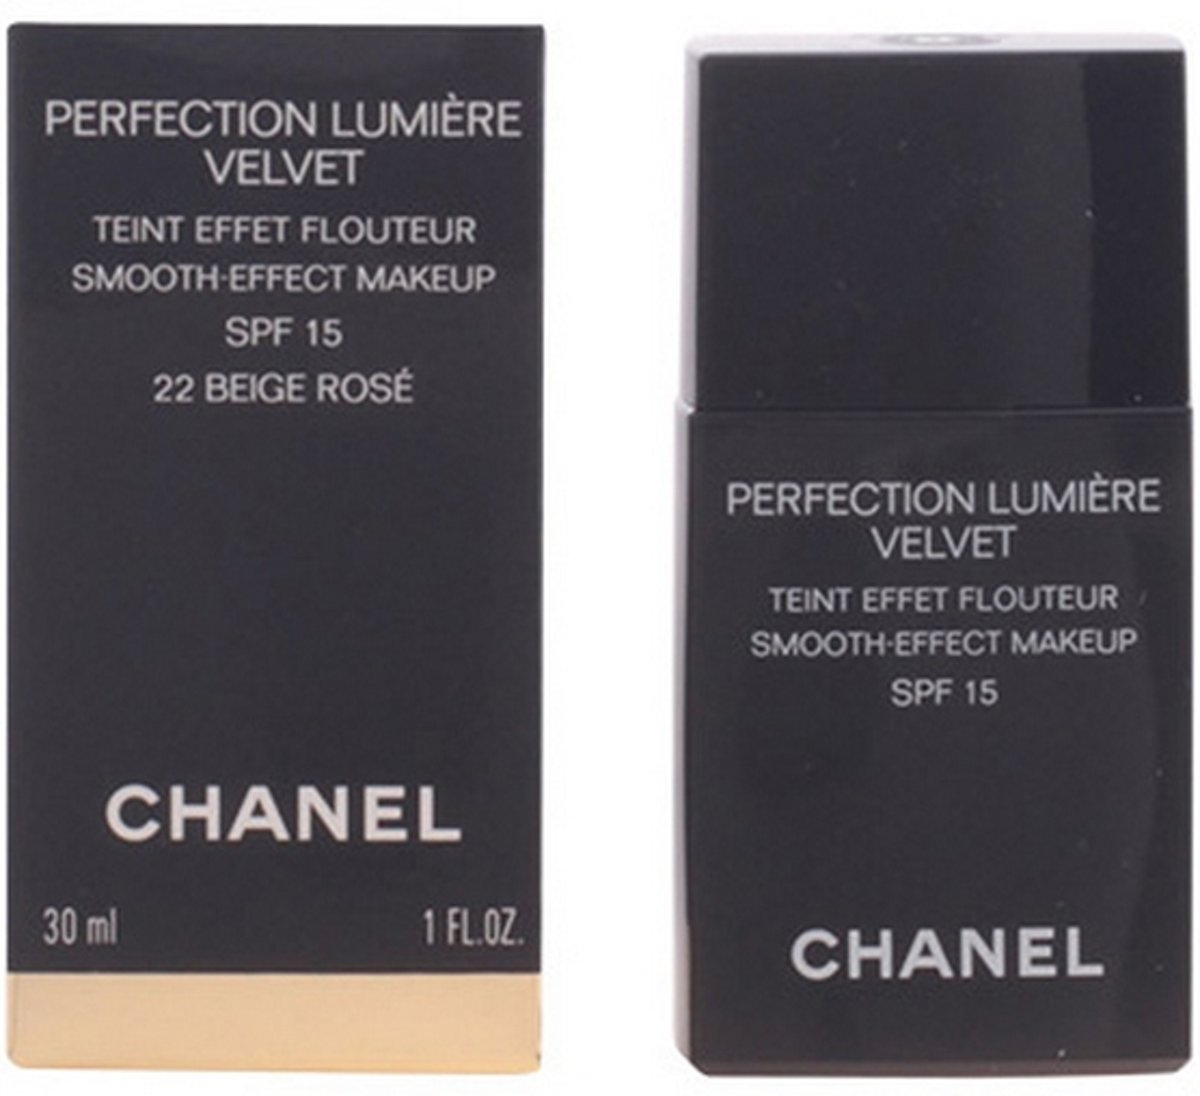 Vloeibare Make-up Perfection Lumiere Velvet Chanel